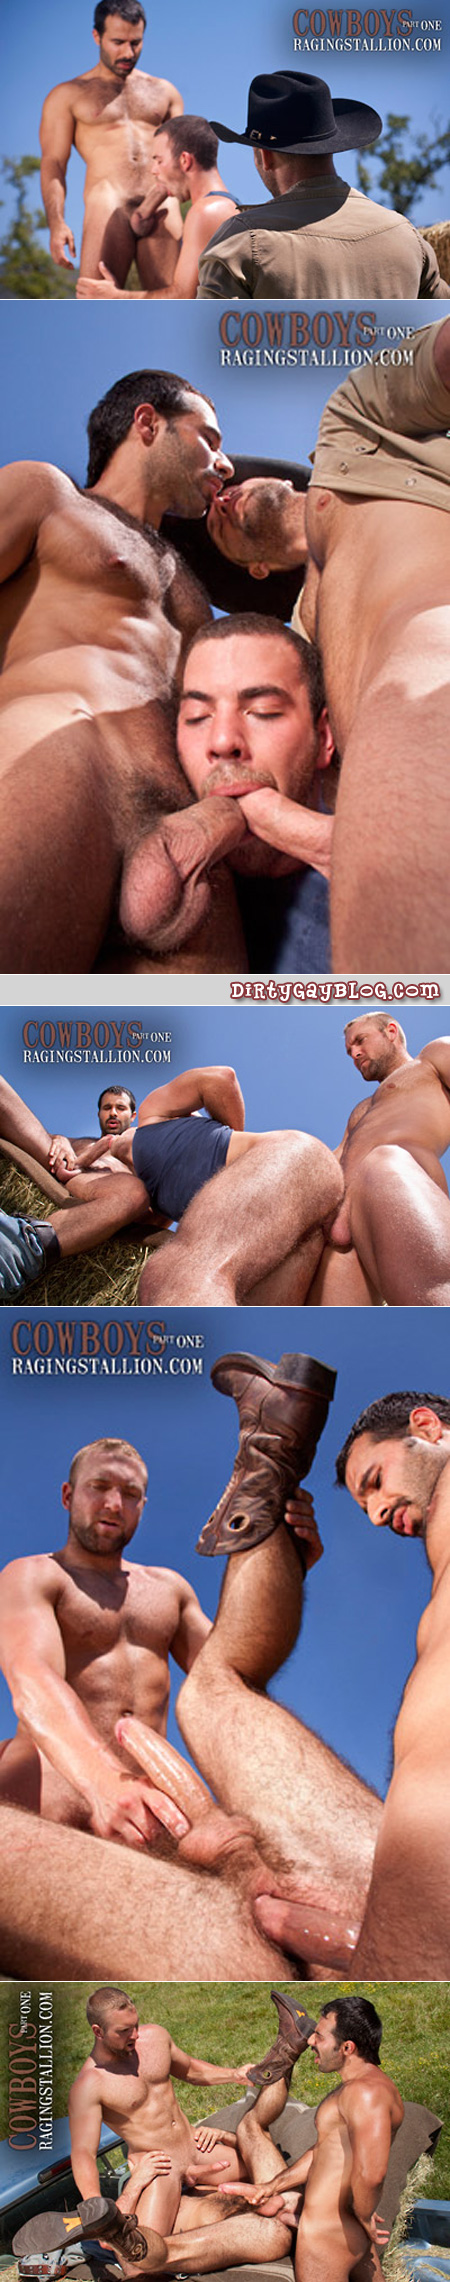 Three hairy cowboys having gay sex in the back of a pickup truck.